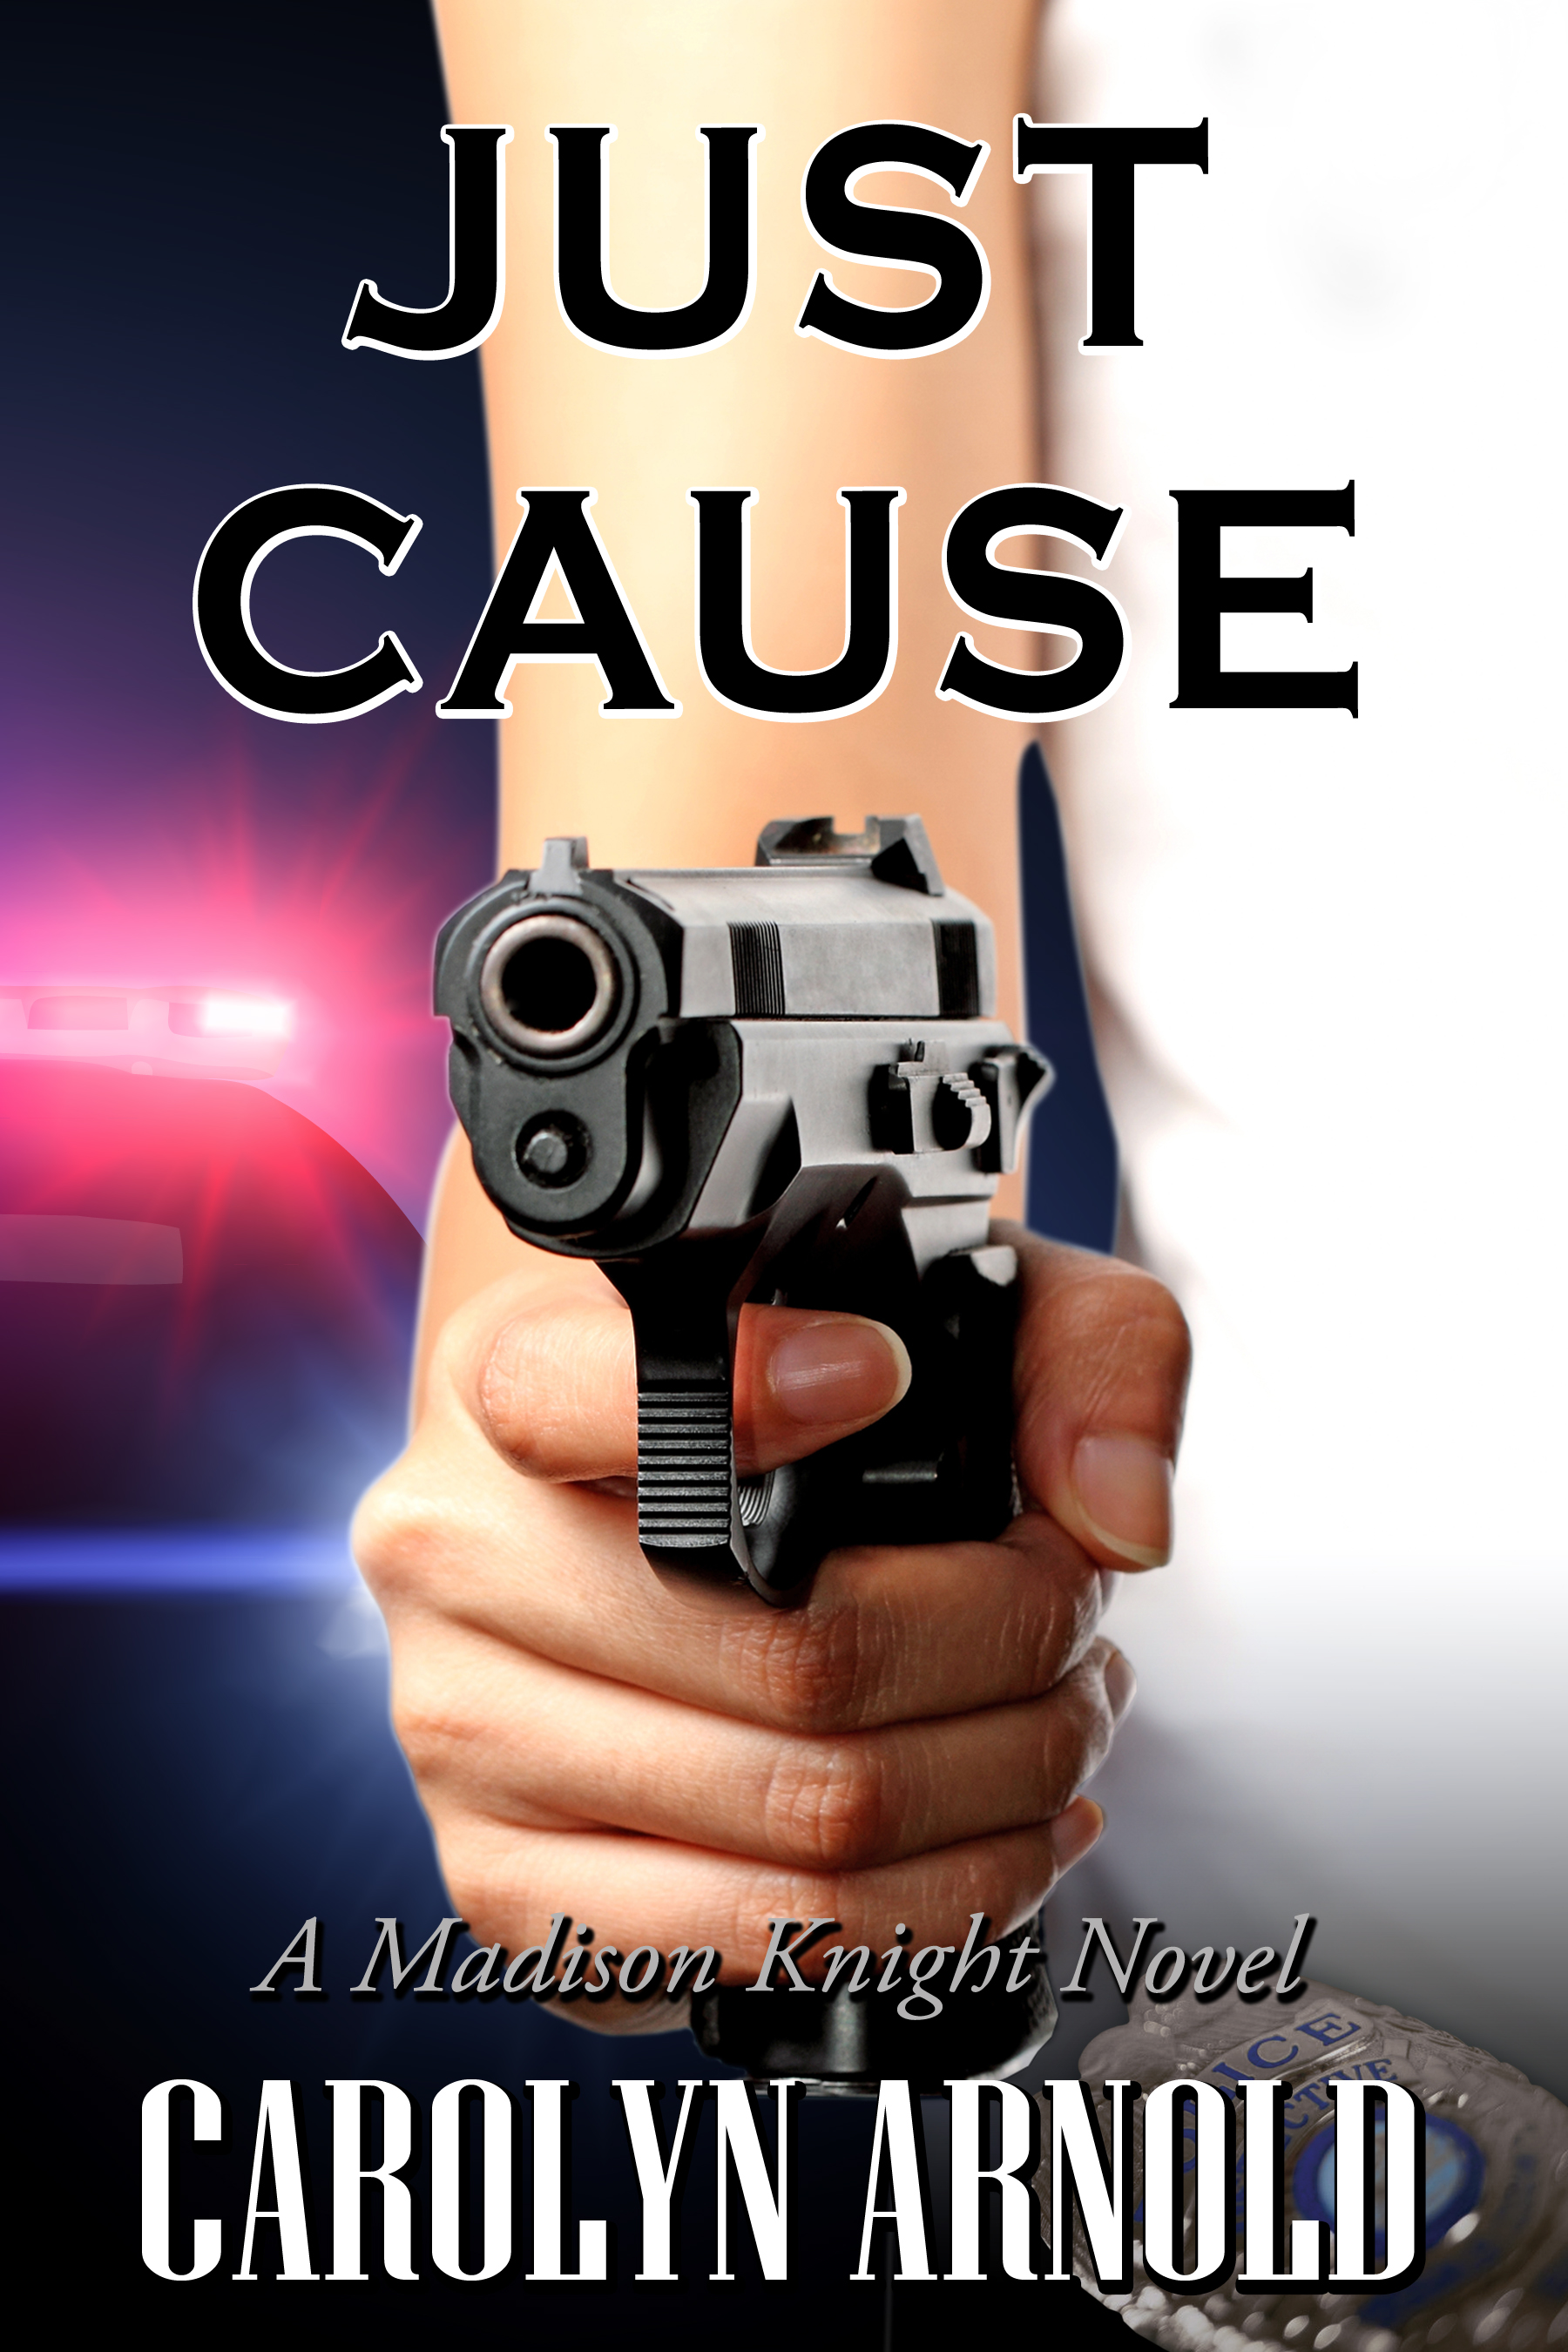 Without Just Cause Ebook Wiring Diagram Bolens G194 Array Available Now U201cjust U201d By Bestselling Author Carolyn Arnold Rh Katieajennings Com